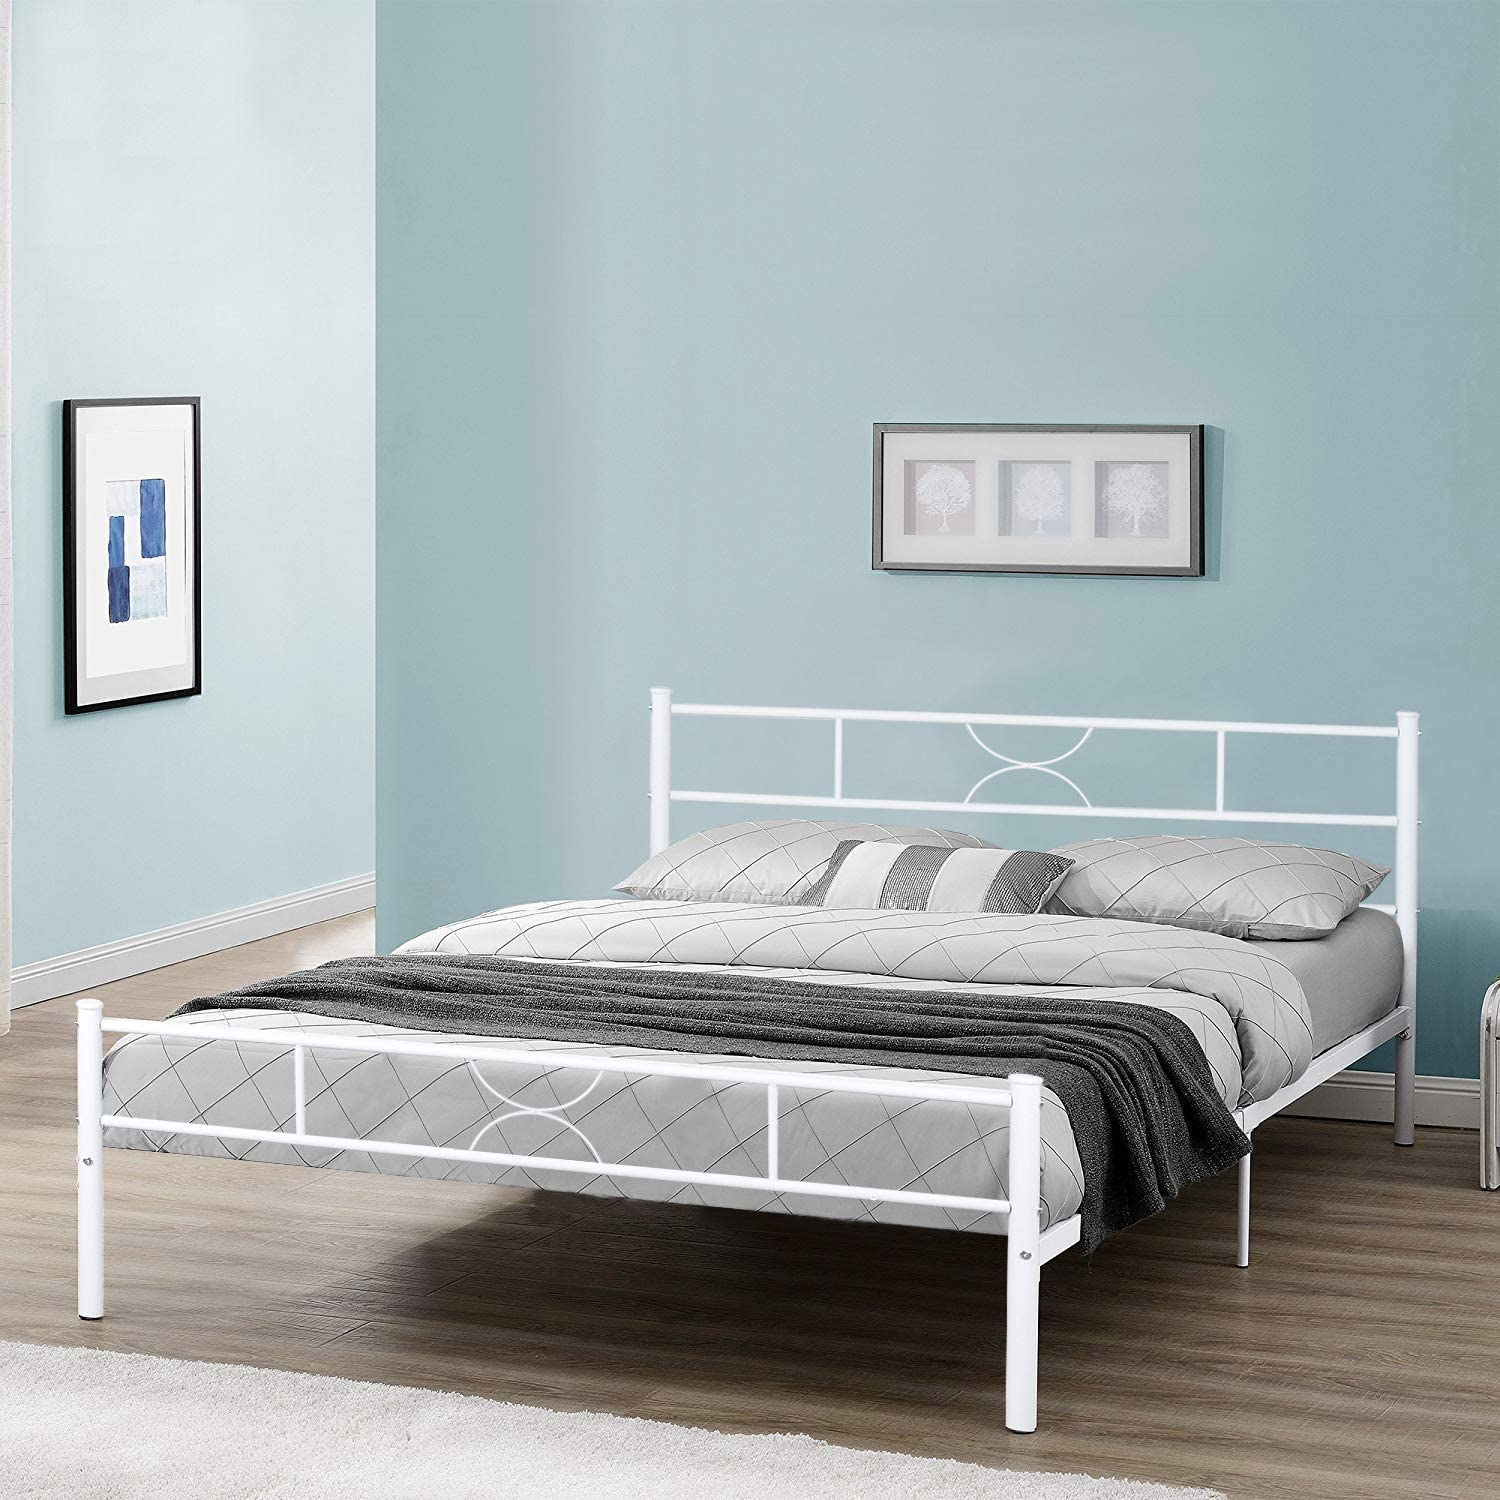 GreenForest Queen Size Bed Frame Metal Bed Platform with Headboard Stable Metal Slats Mattress Foundation No Box Spring Needed, White